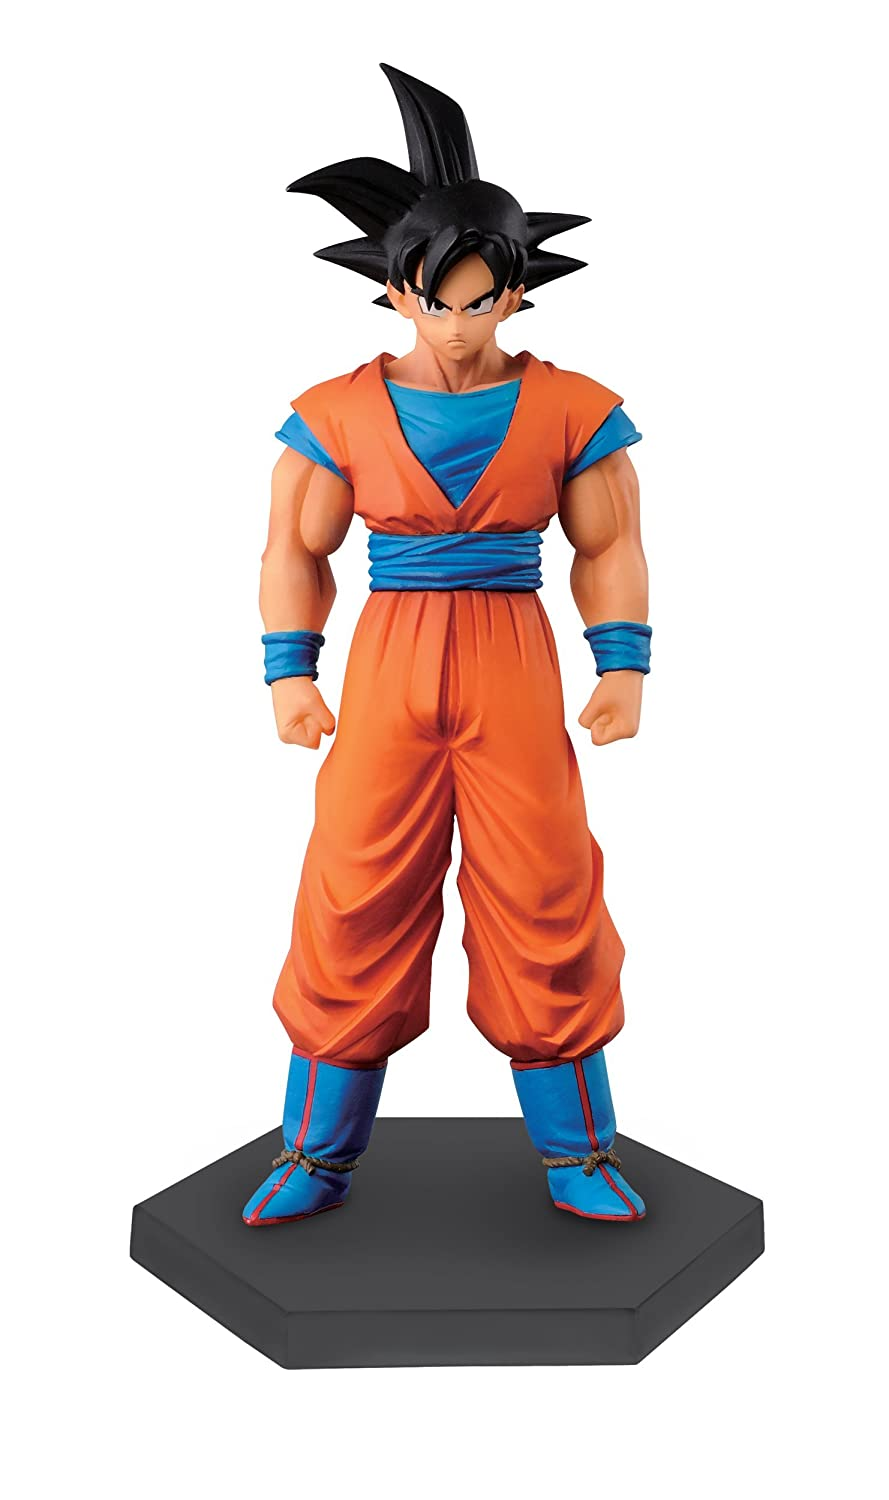 Banpresto Dragon Ball Z 5.9-Inch Goku Figure, Chozousyu Volume 3